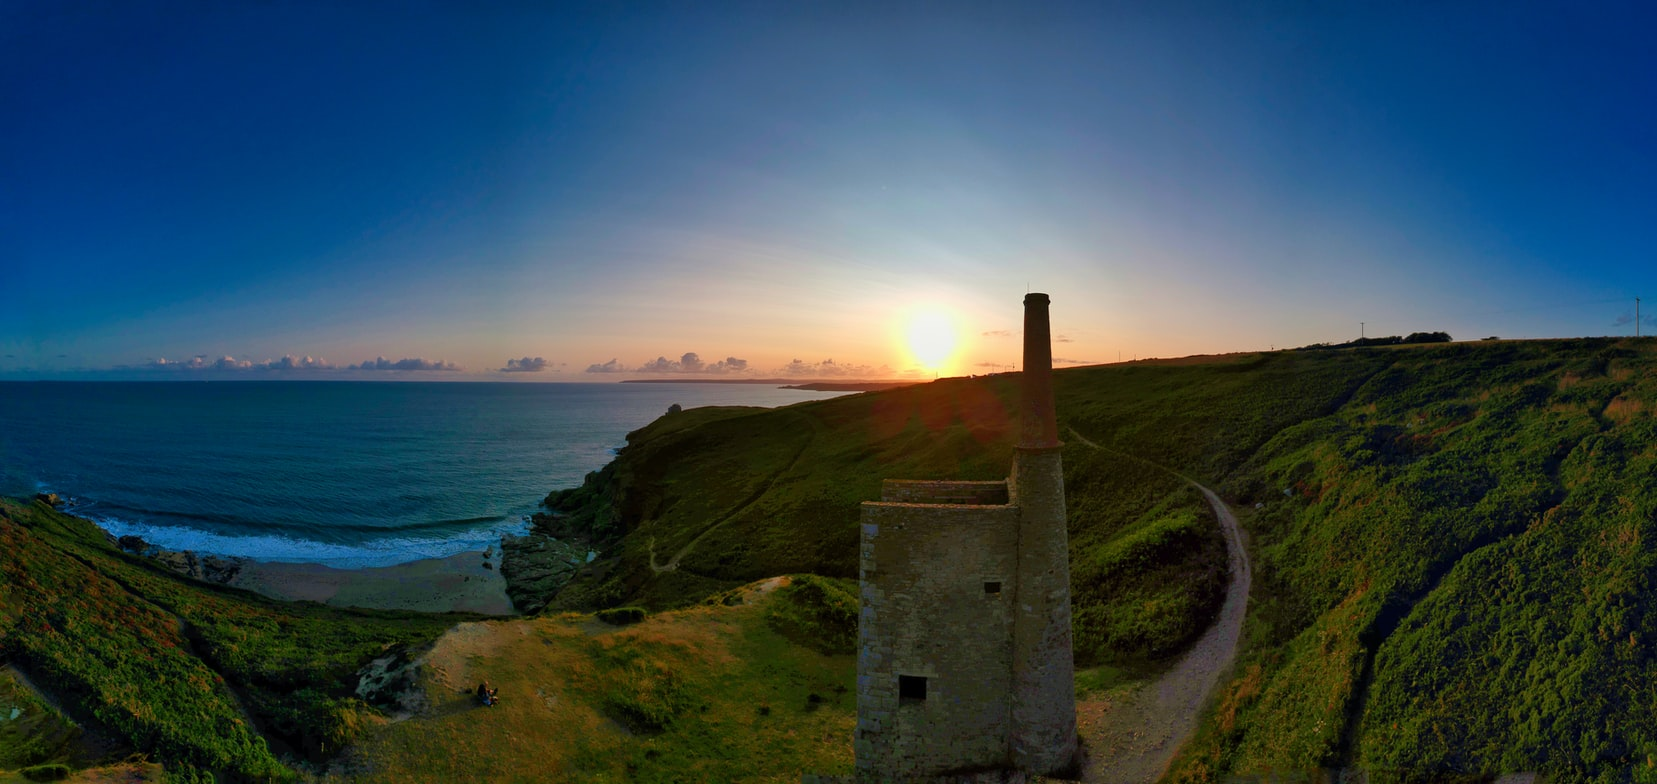 The compass point on the southwest coast path: attractions to see in Bude.